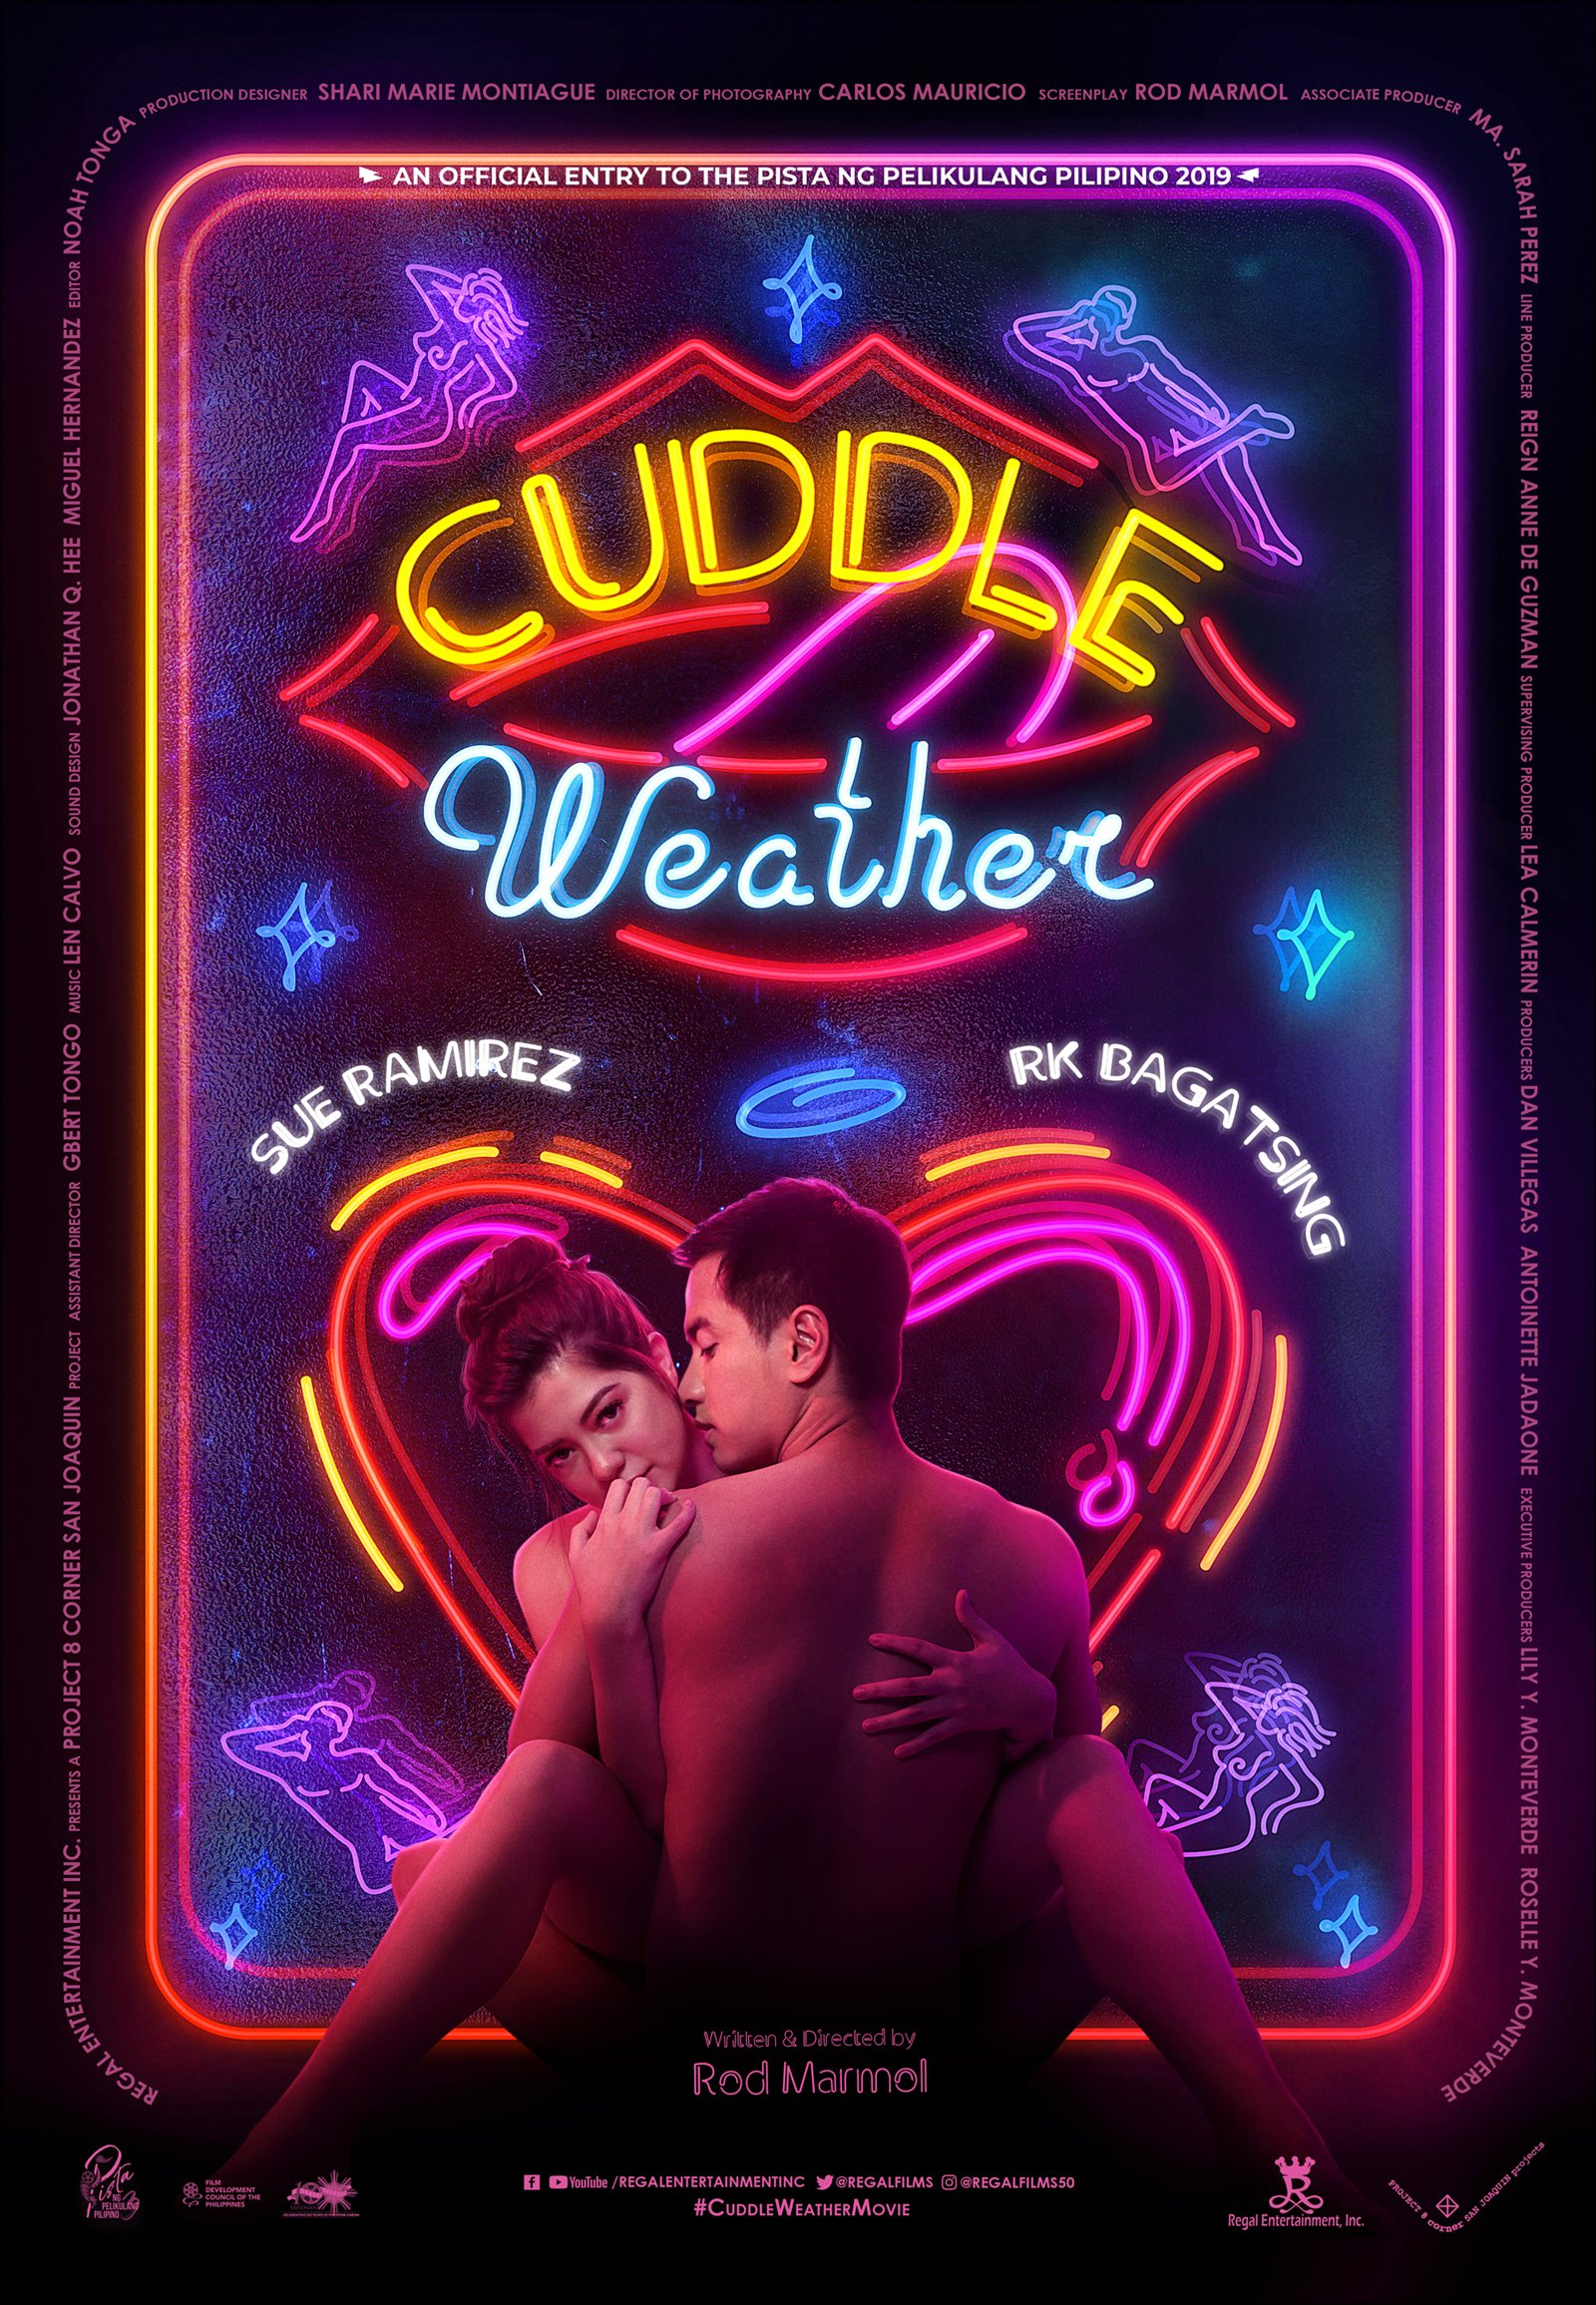 Cuddle Weather Digital Poster - Copy PPP